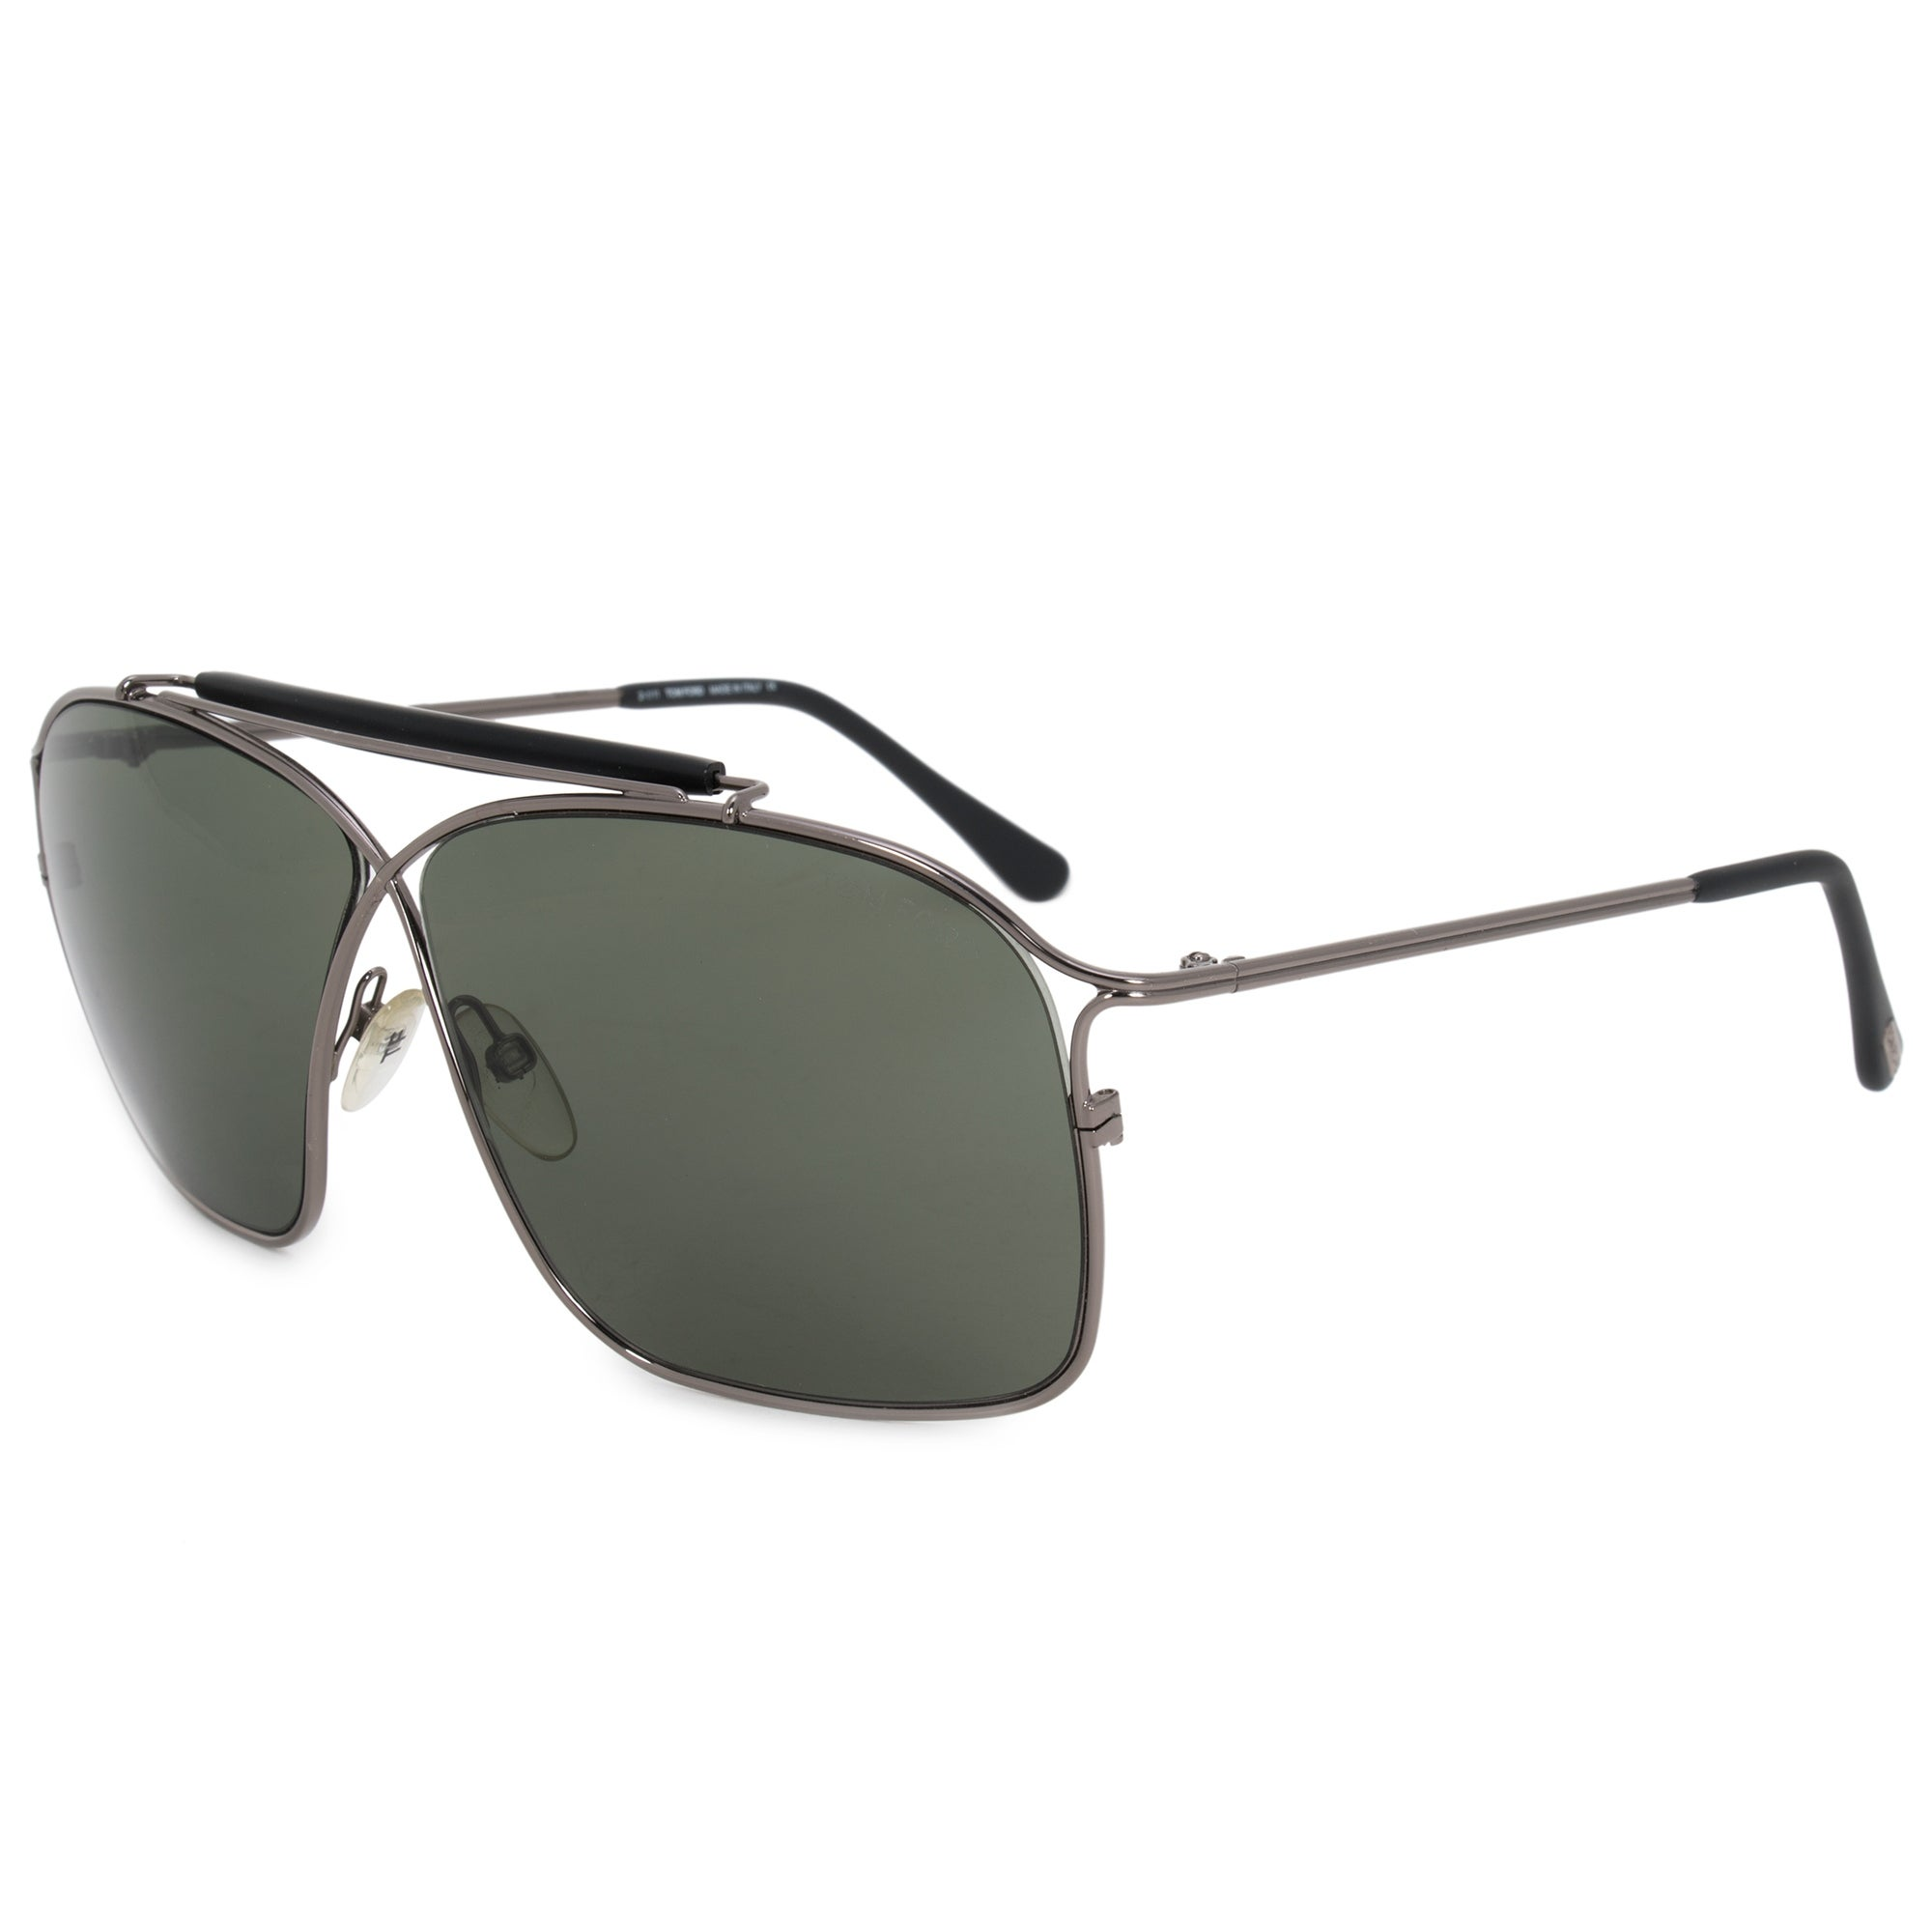 4407941dc6b8 Shop Tom Ford Felix Aviator Sunglasses FT0194 08N 60 - Free Shipping Today  - Overstock - 21408882